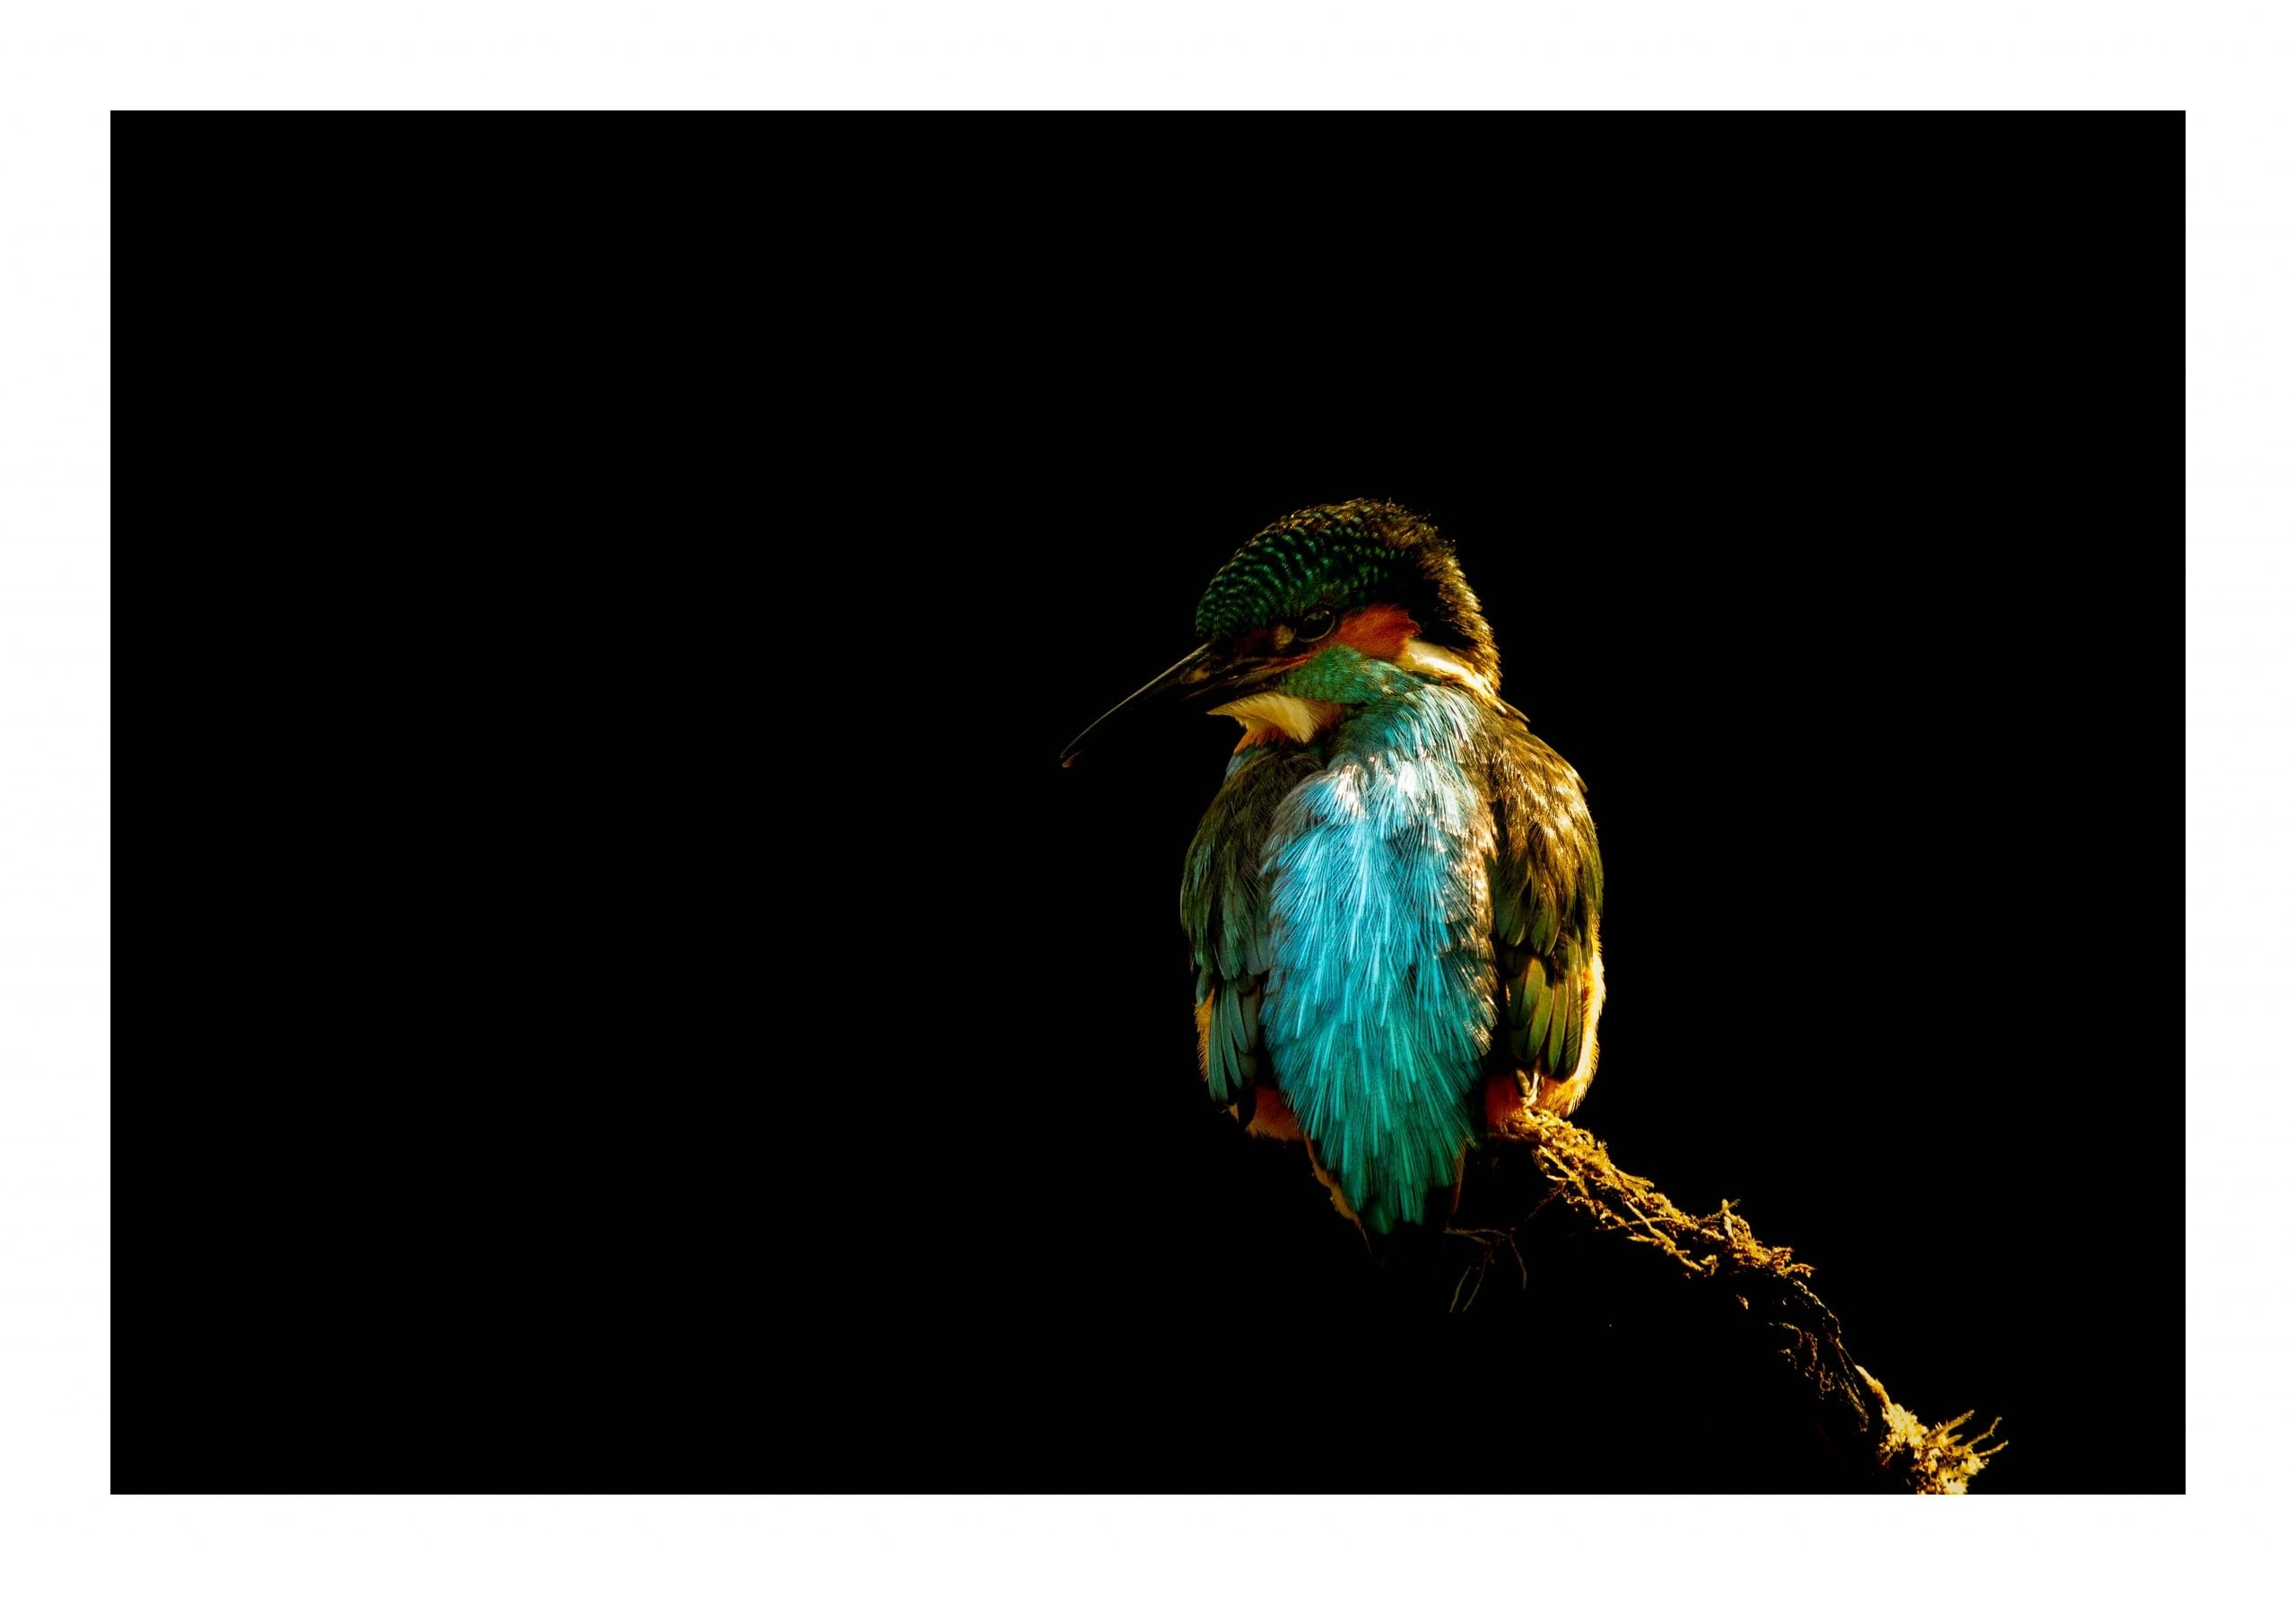 kingfisher on black